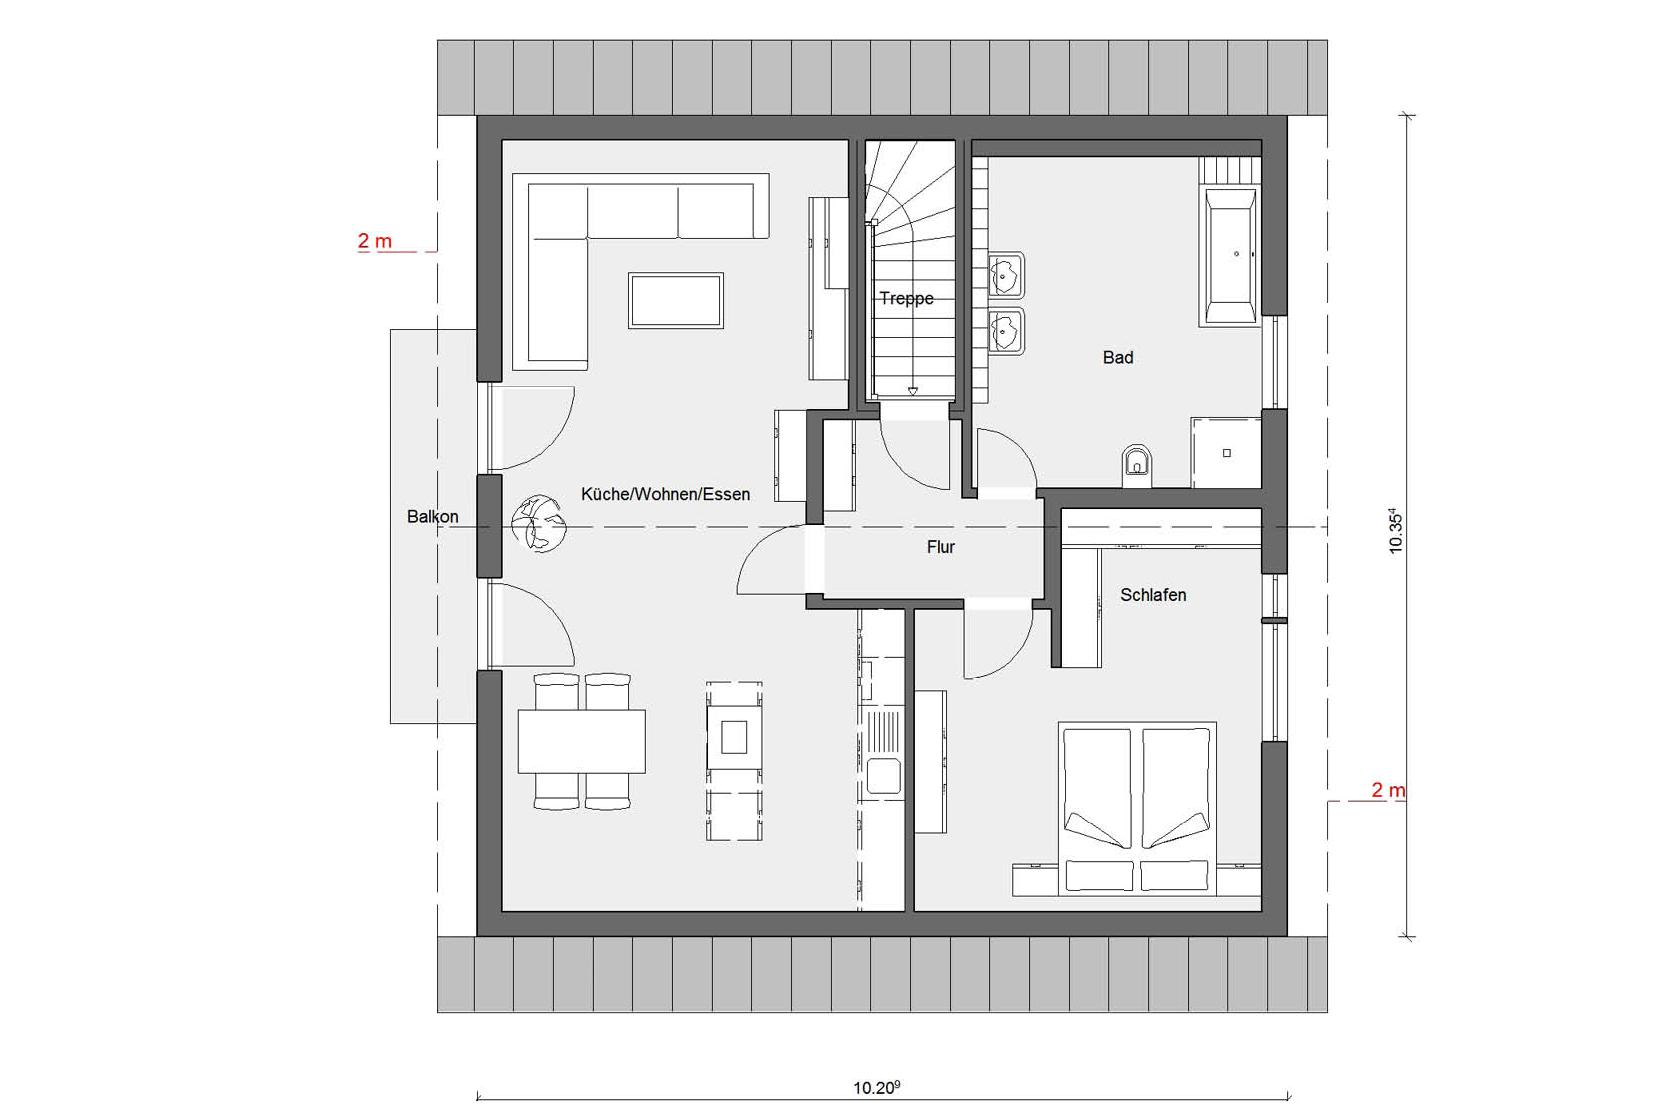 Floor plan penthouse M 15-179.2 Detached house with studio flat